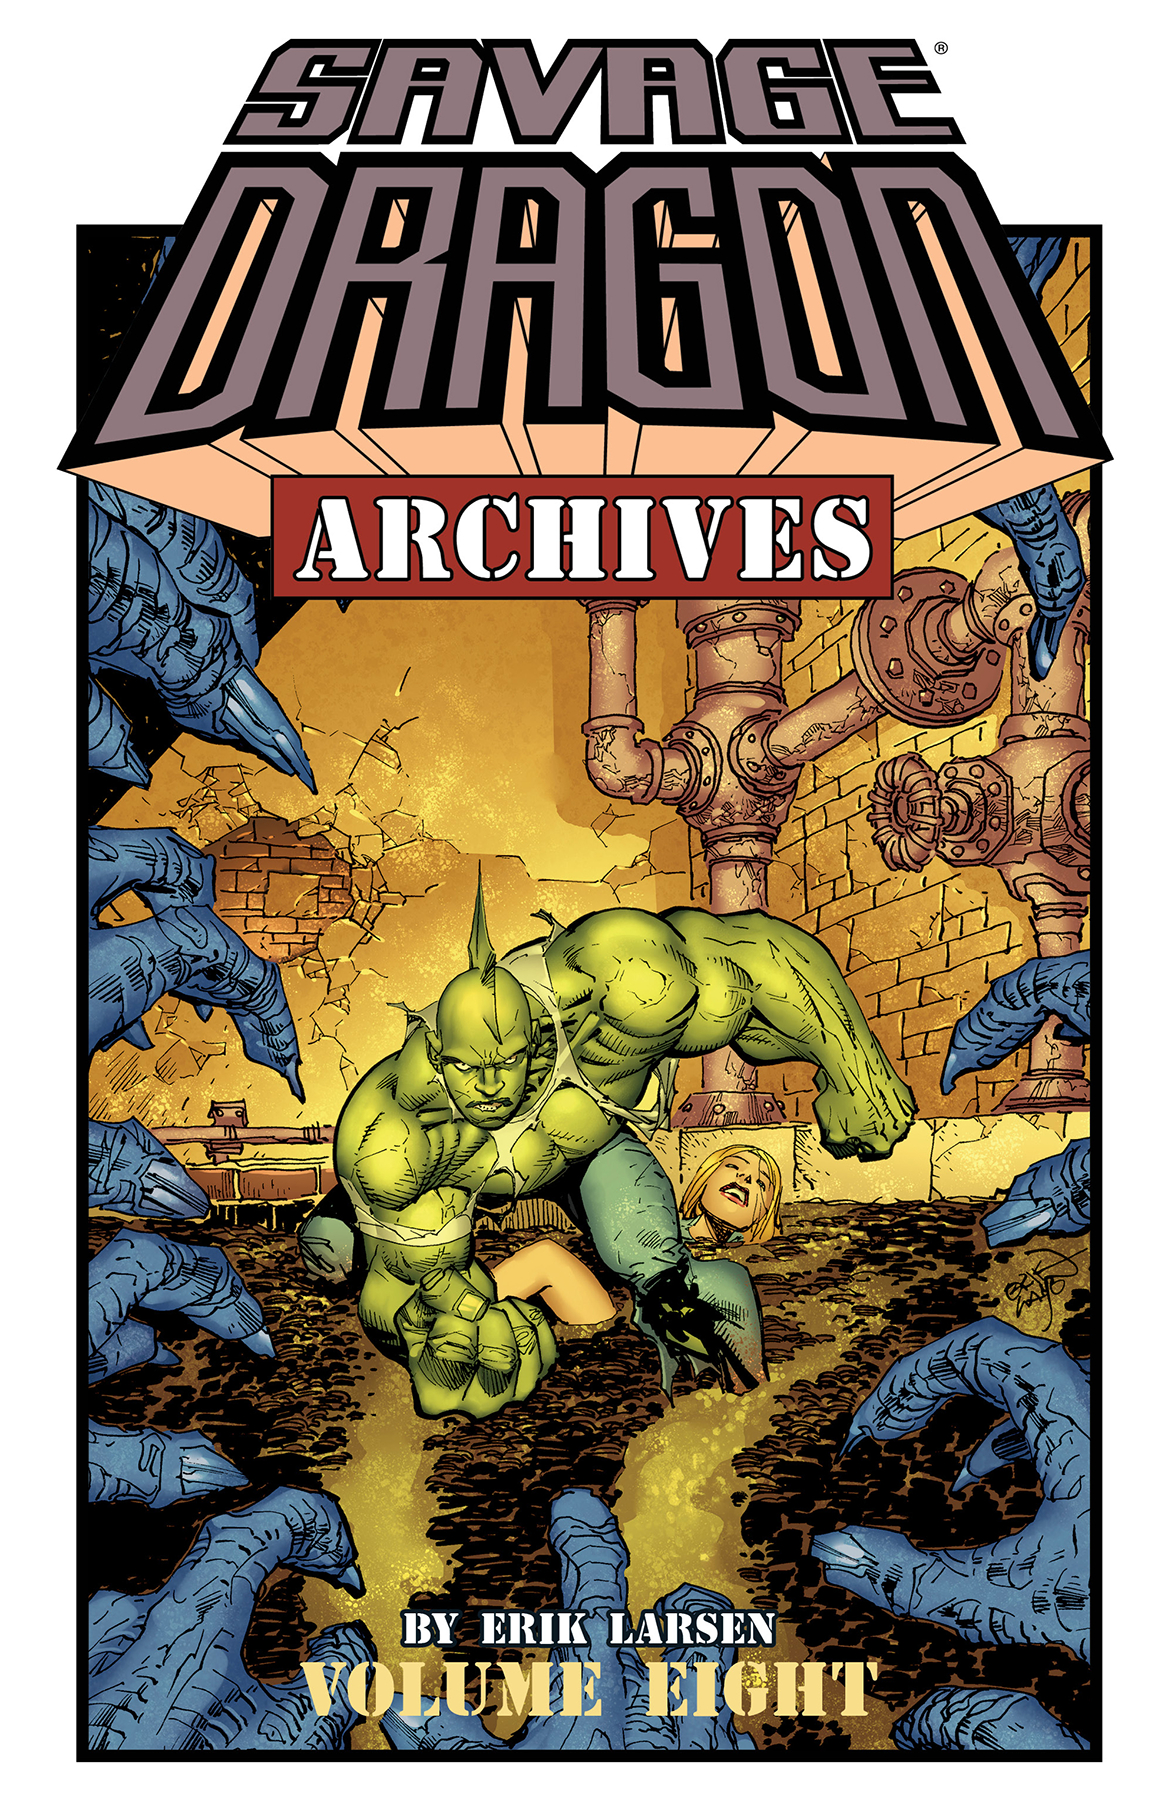 SAVAGE DRAGON ARCHIVES TP VOL 08 (FEB170740) (MR)